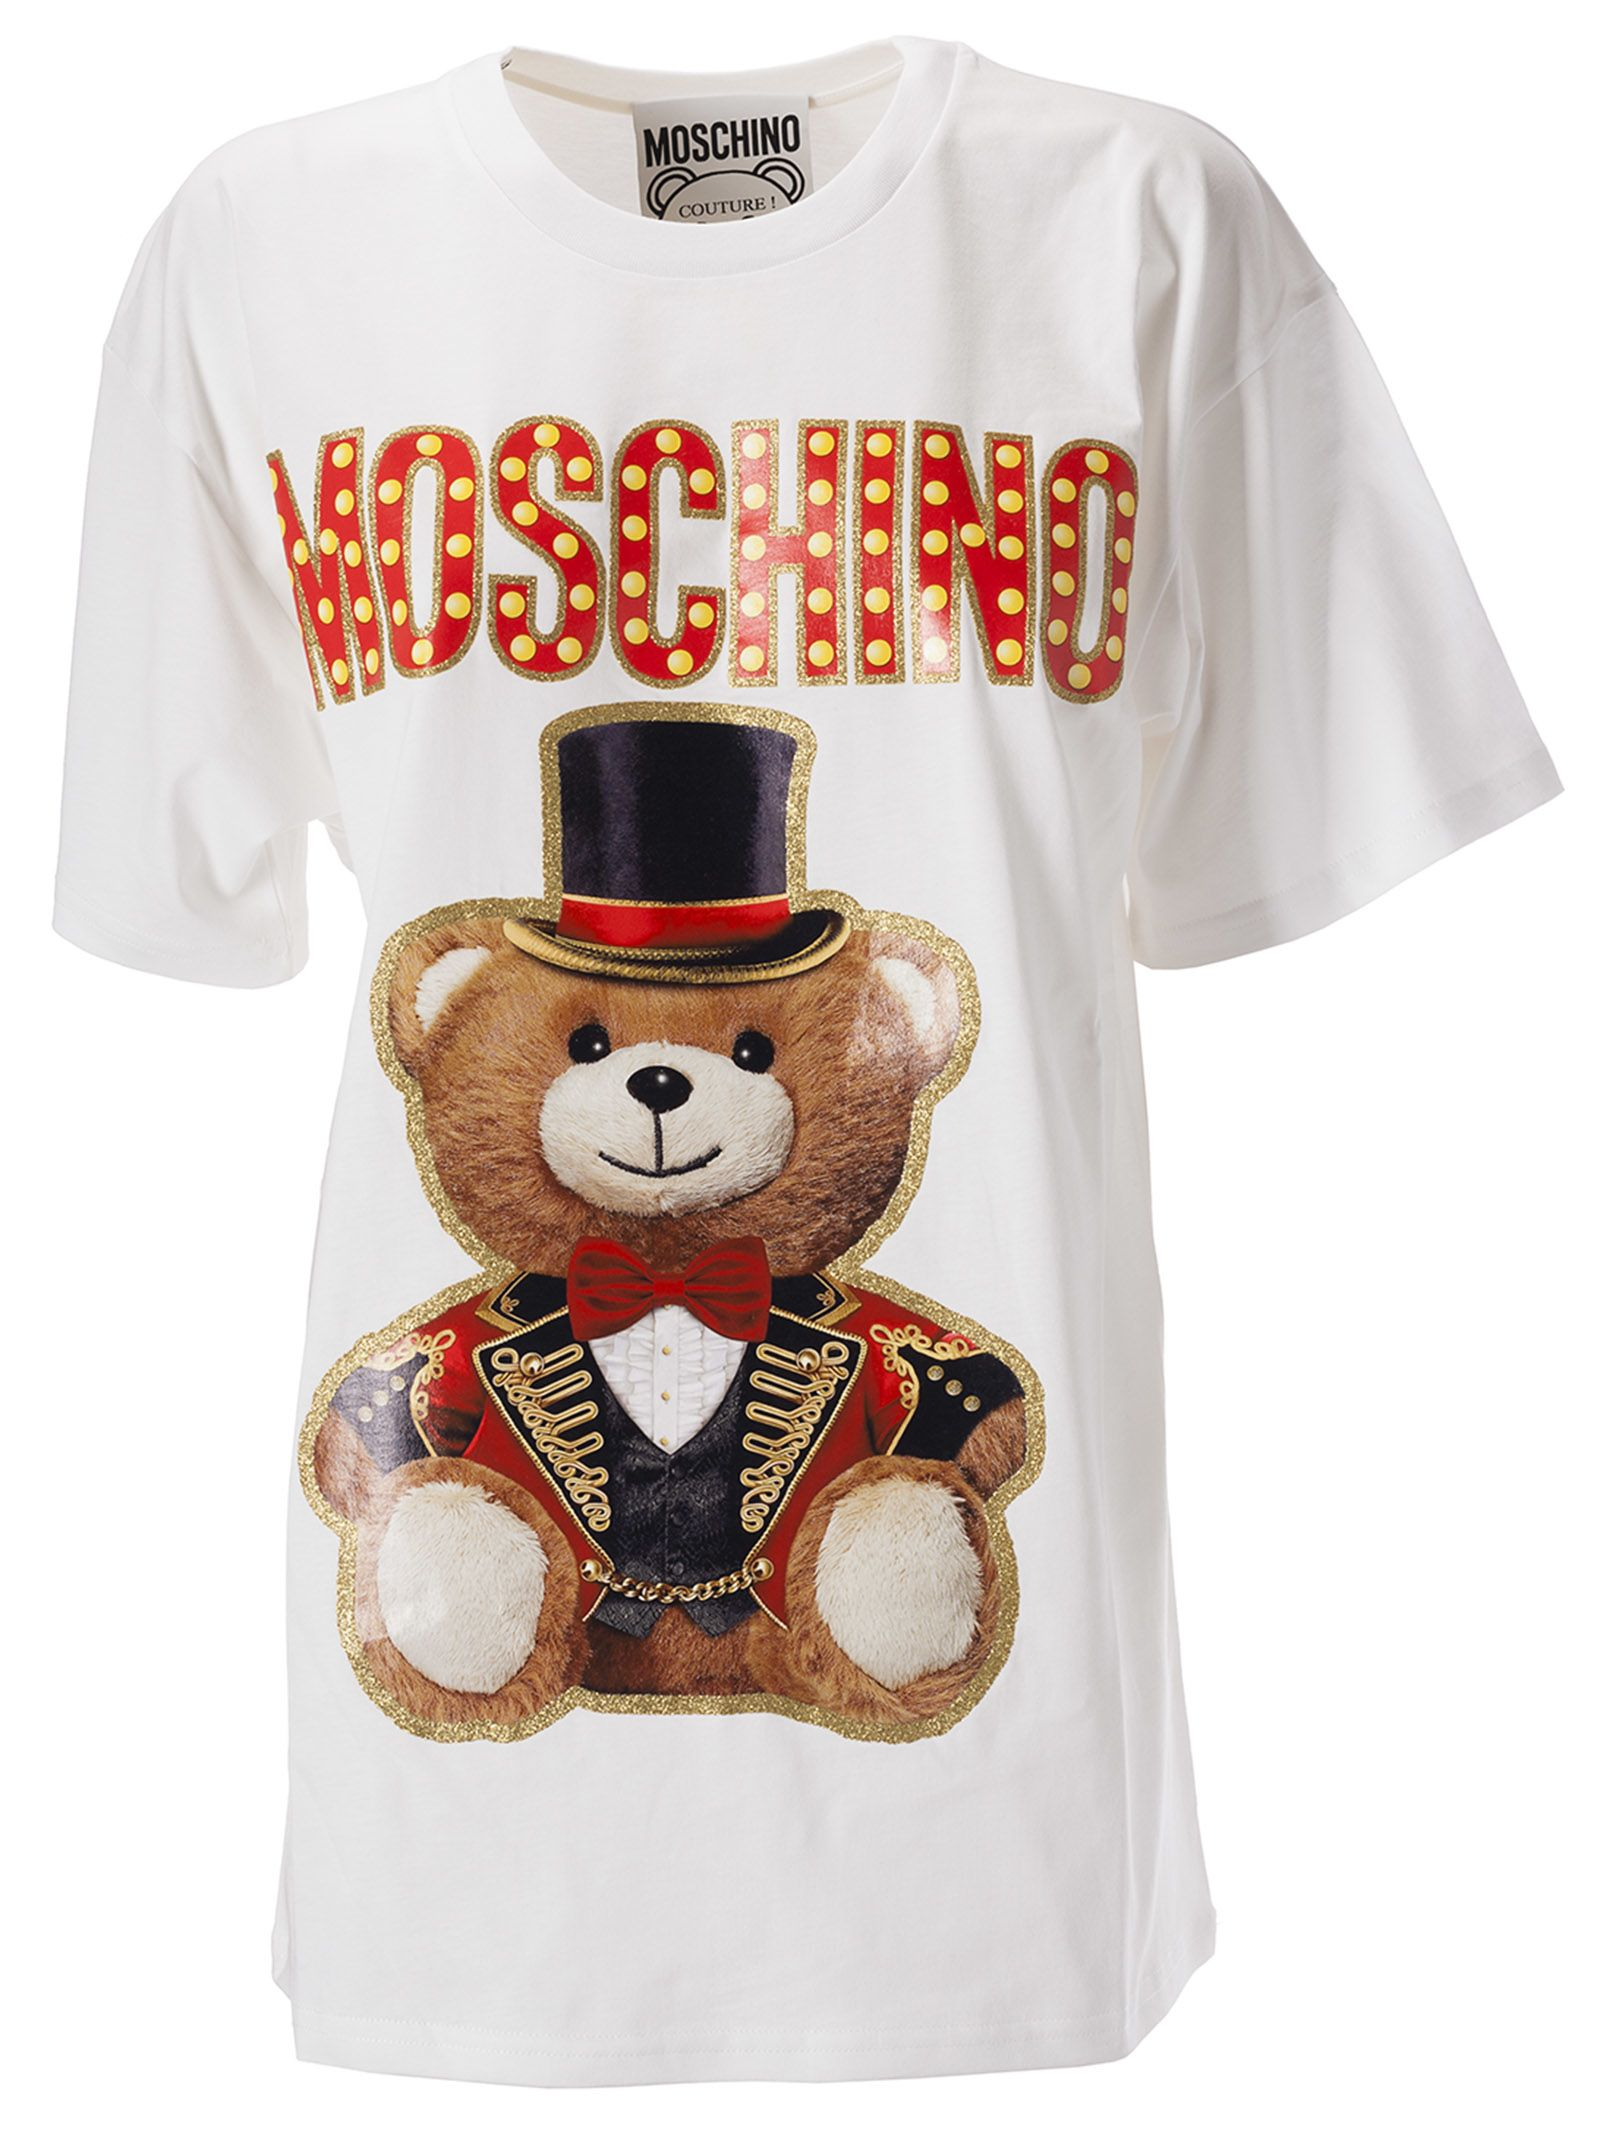 cd7a12f93 Moschino Women's T-Shirt Short Sleeve Crew Neck Round Teddy Circus In 3001  White